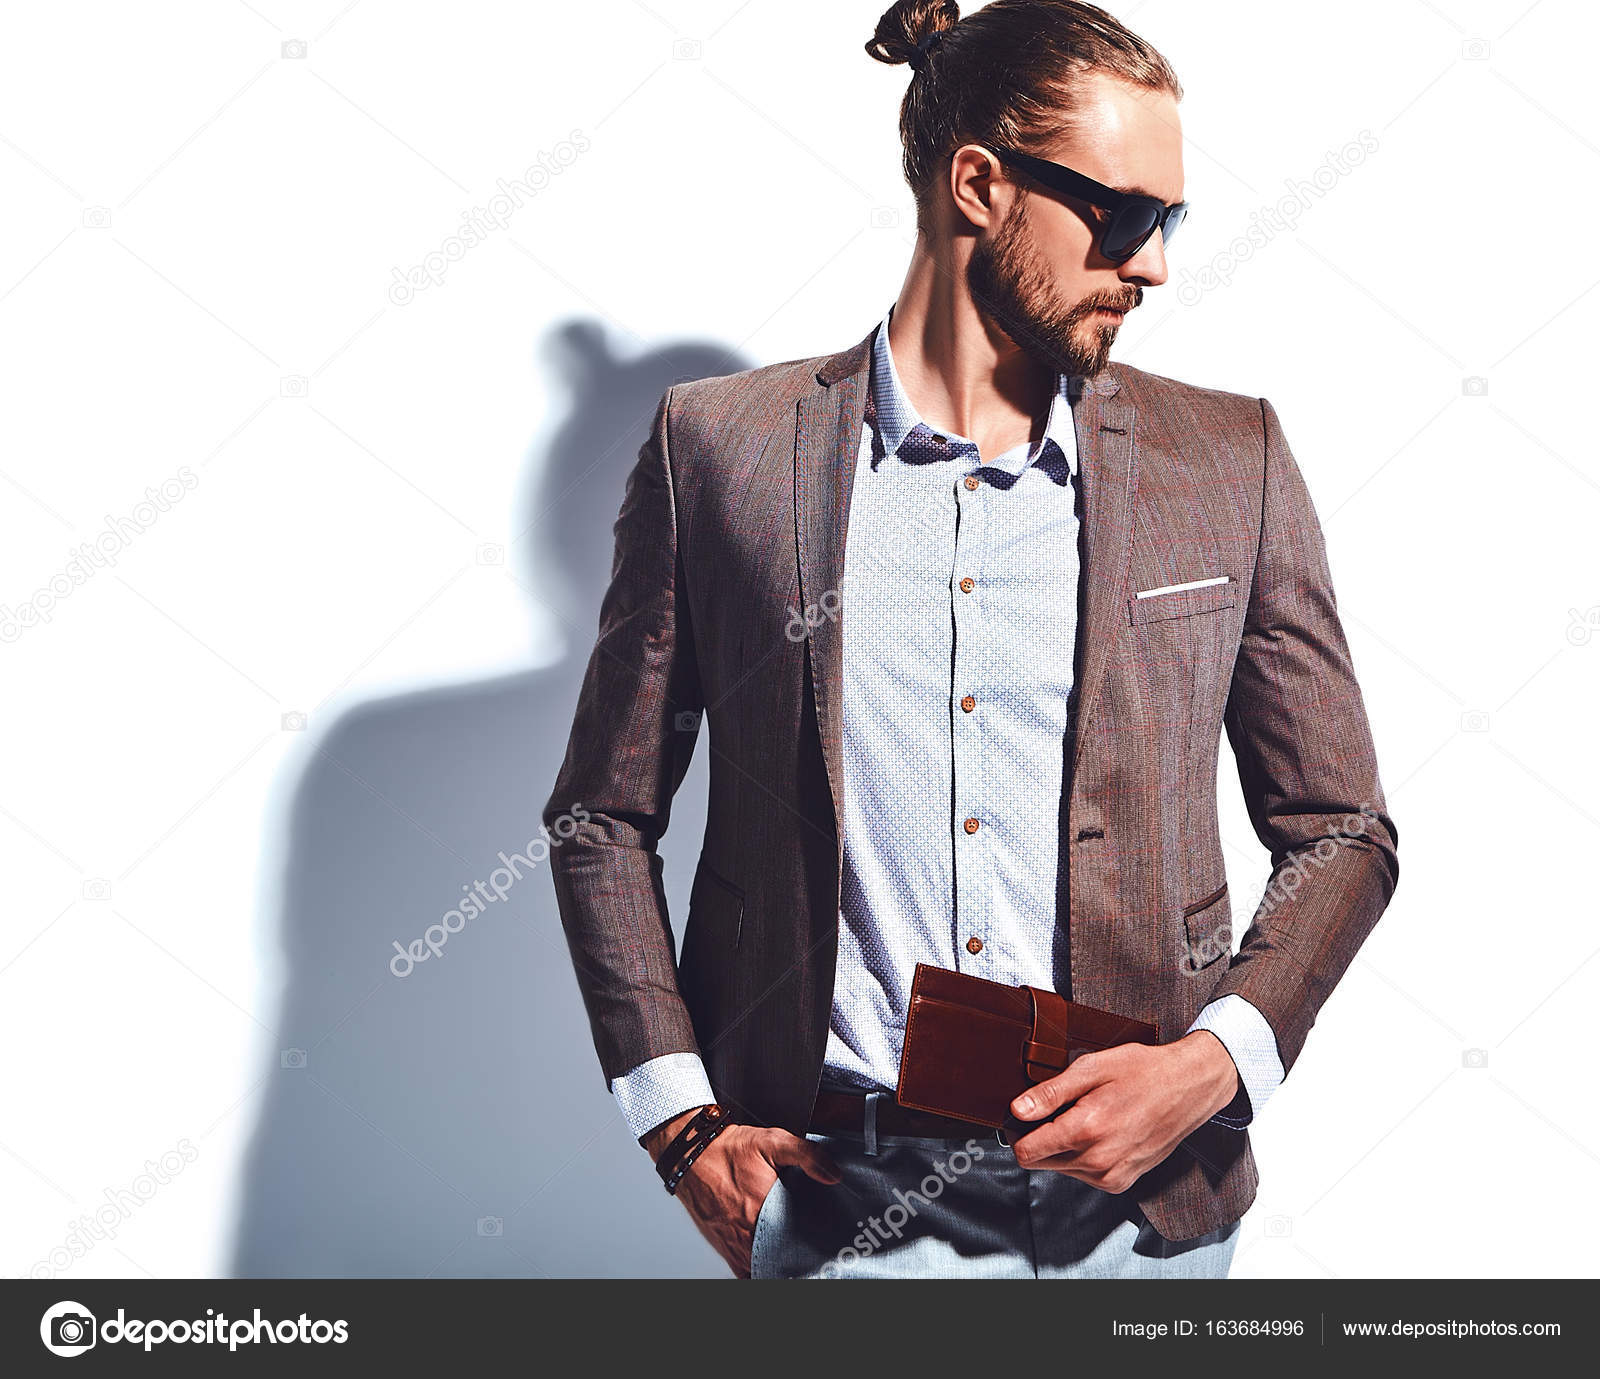 Vestiti Eleganti Hipster.Portrait Of Handsome Fashion Stylish Hipster Businessman Model